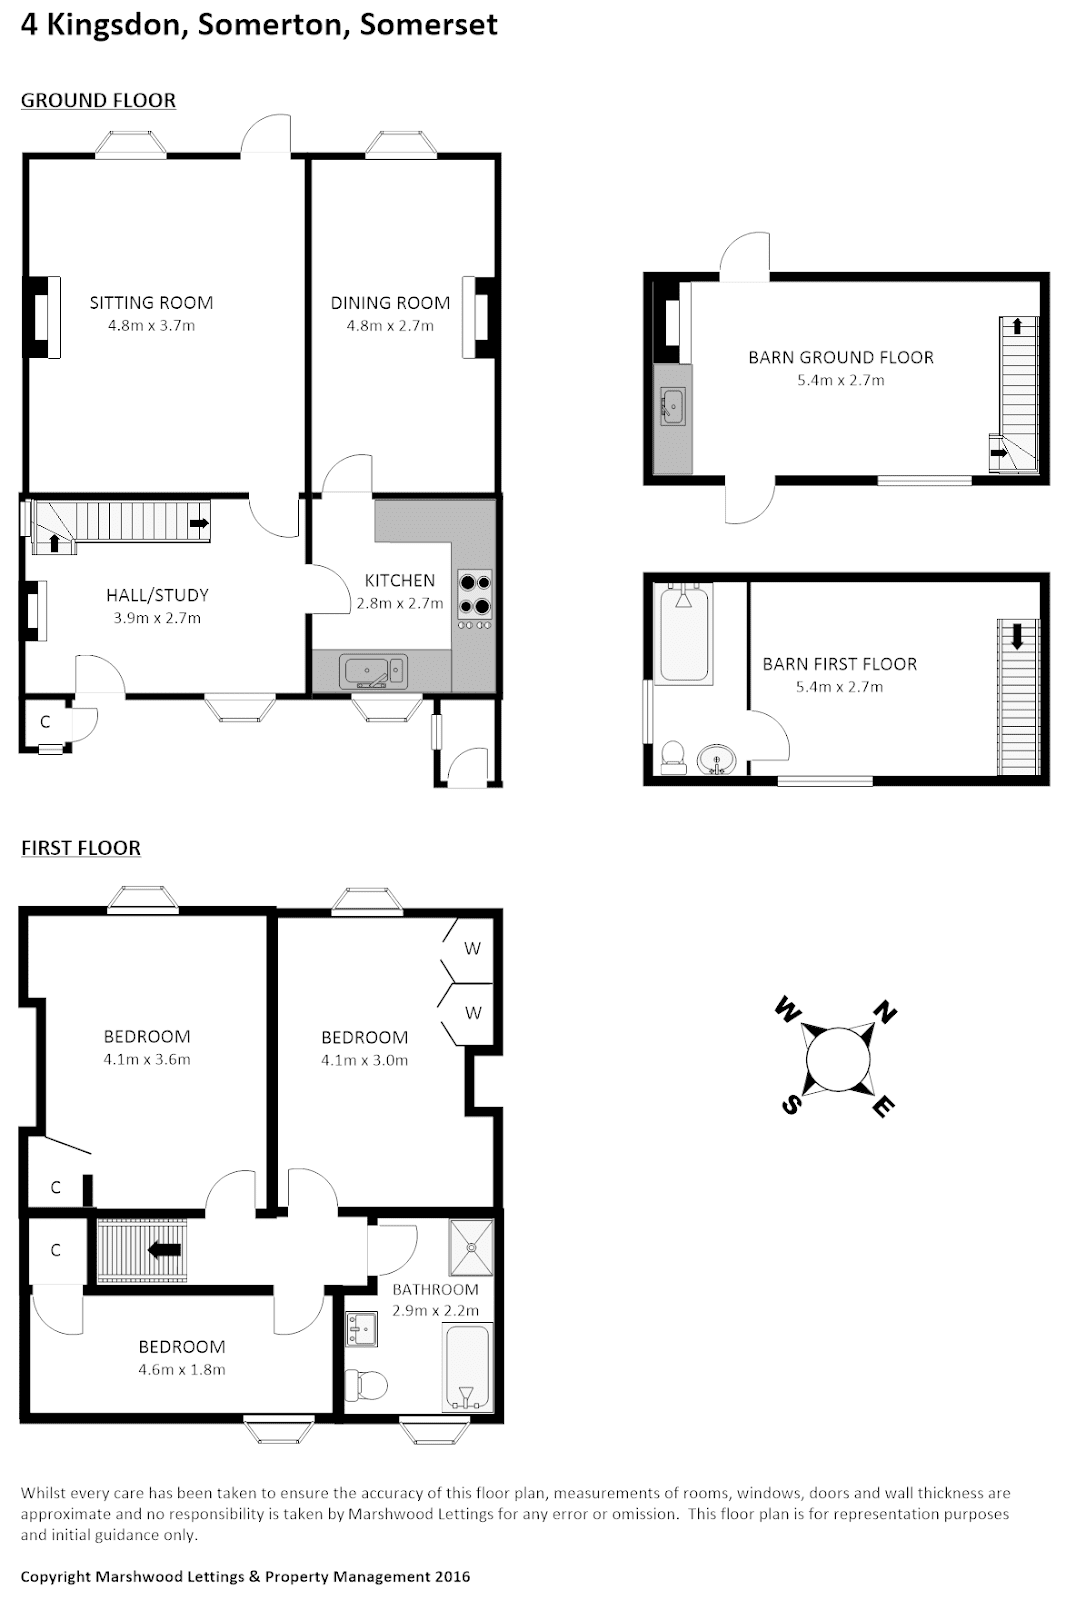 Kingsdon Floor Plan Final Google Docs.png